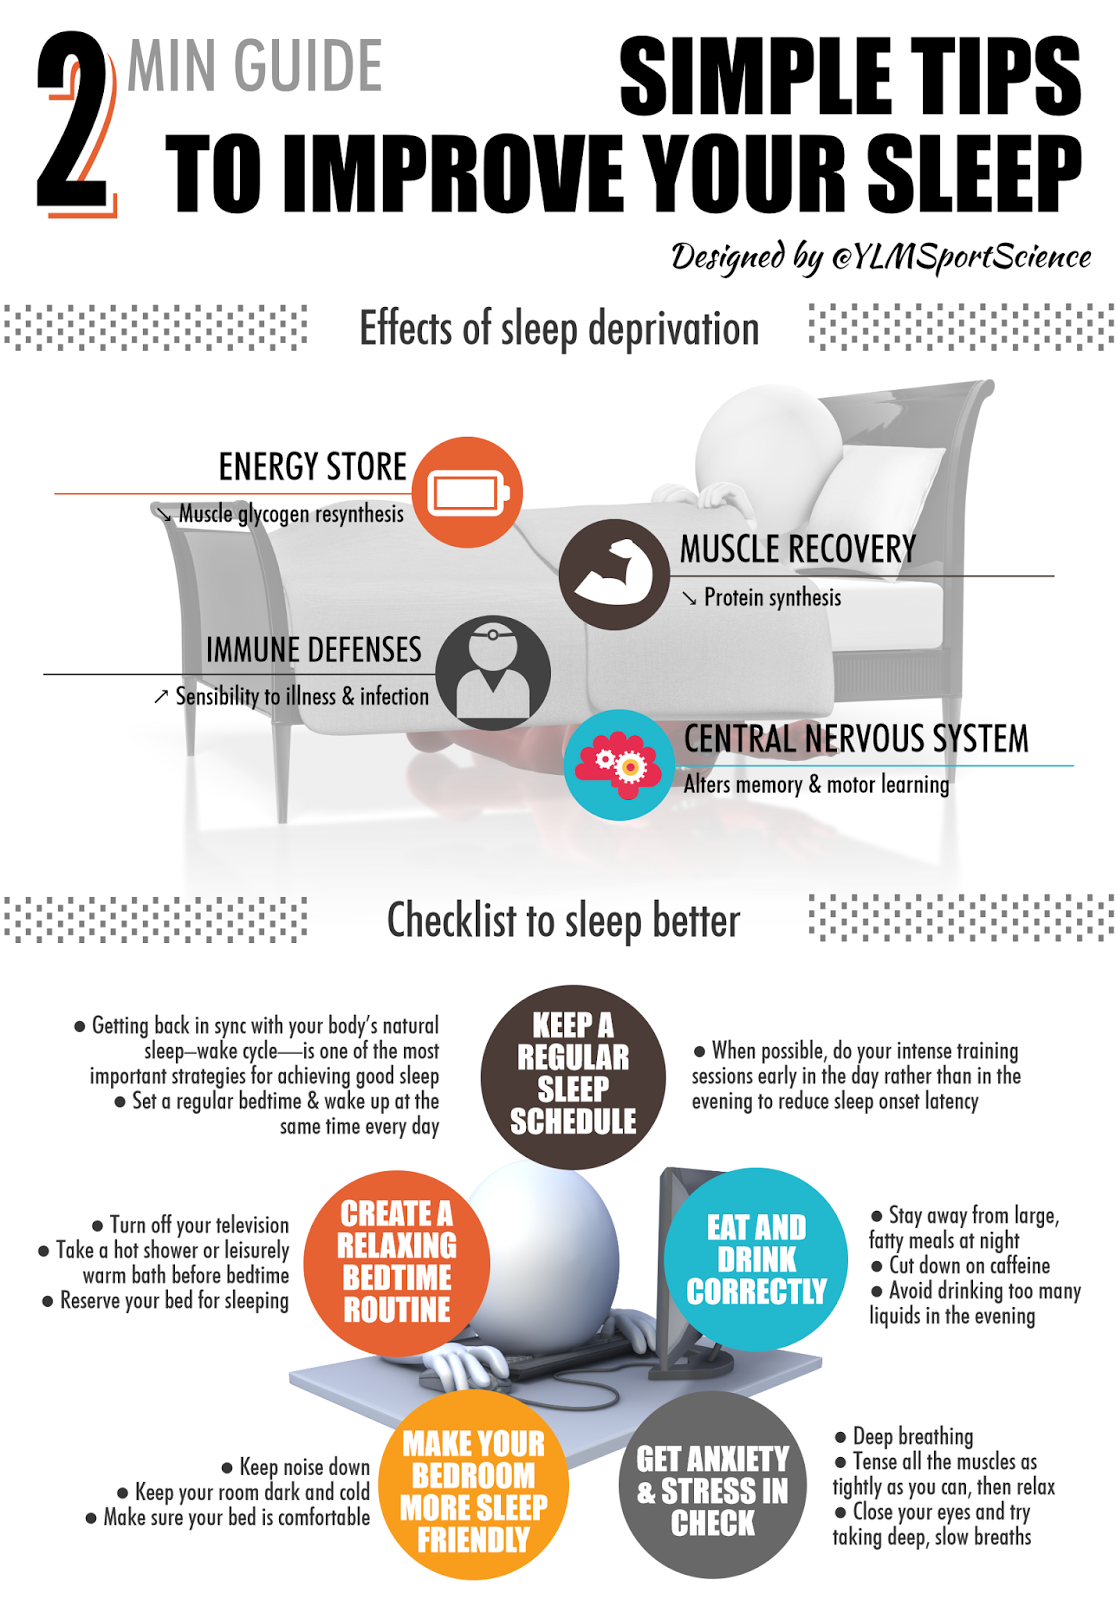 Simple Tips to improve your sleep